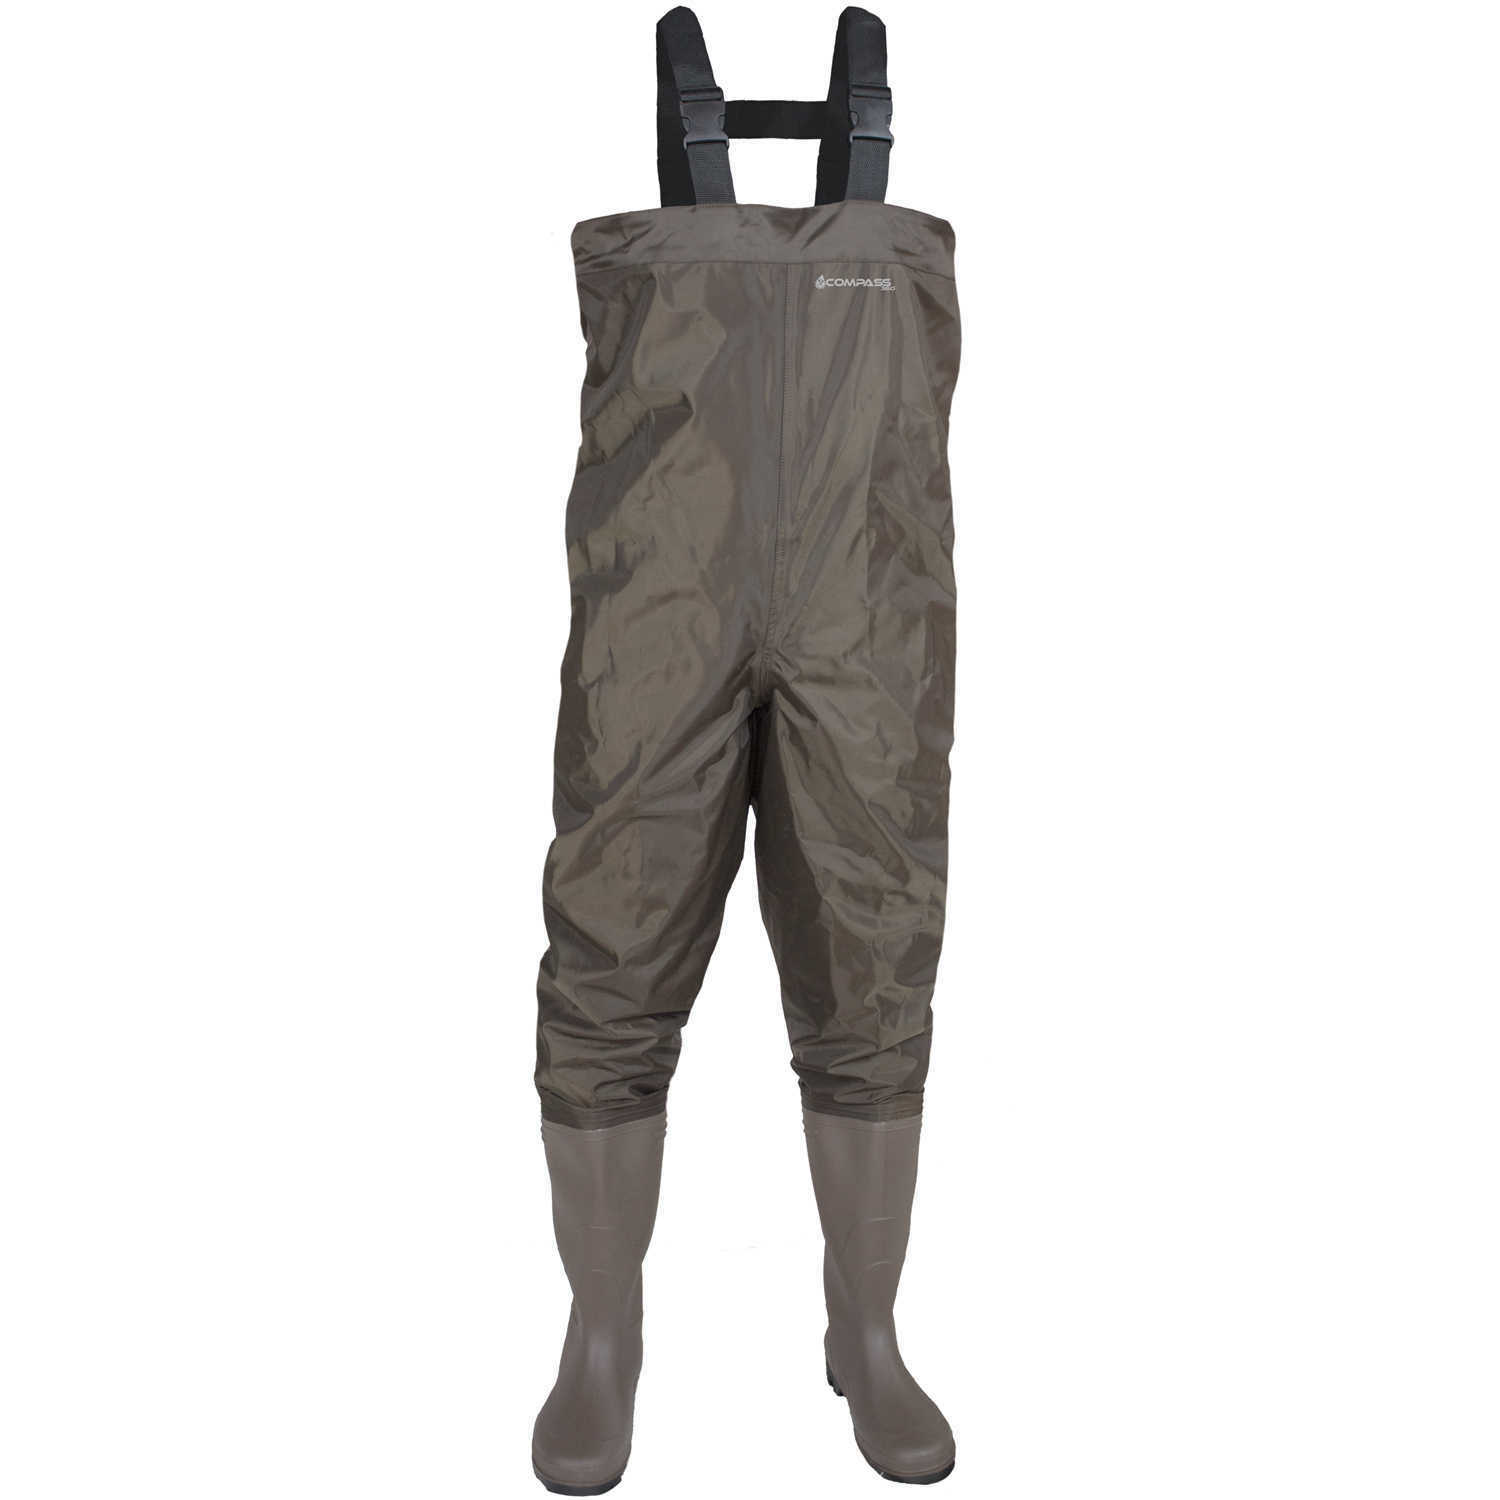 Compass 360 Windward PVC Cleated Sole Chest Waders Size 7